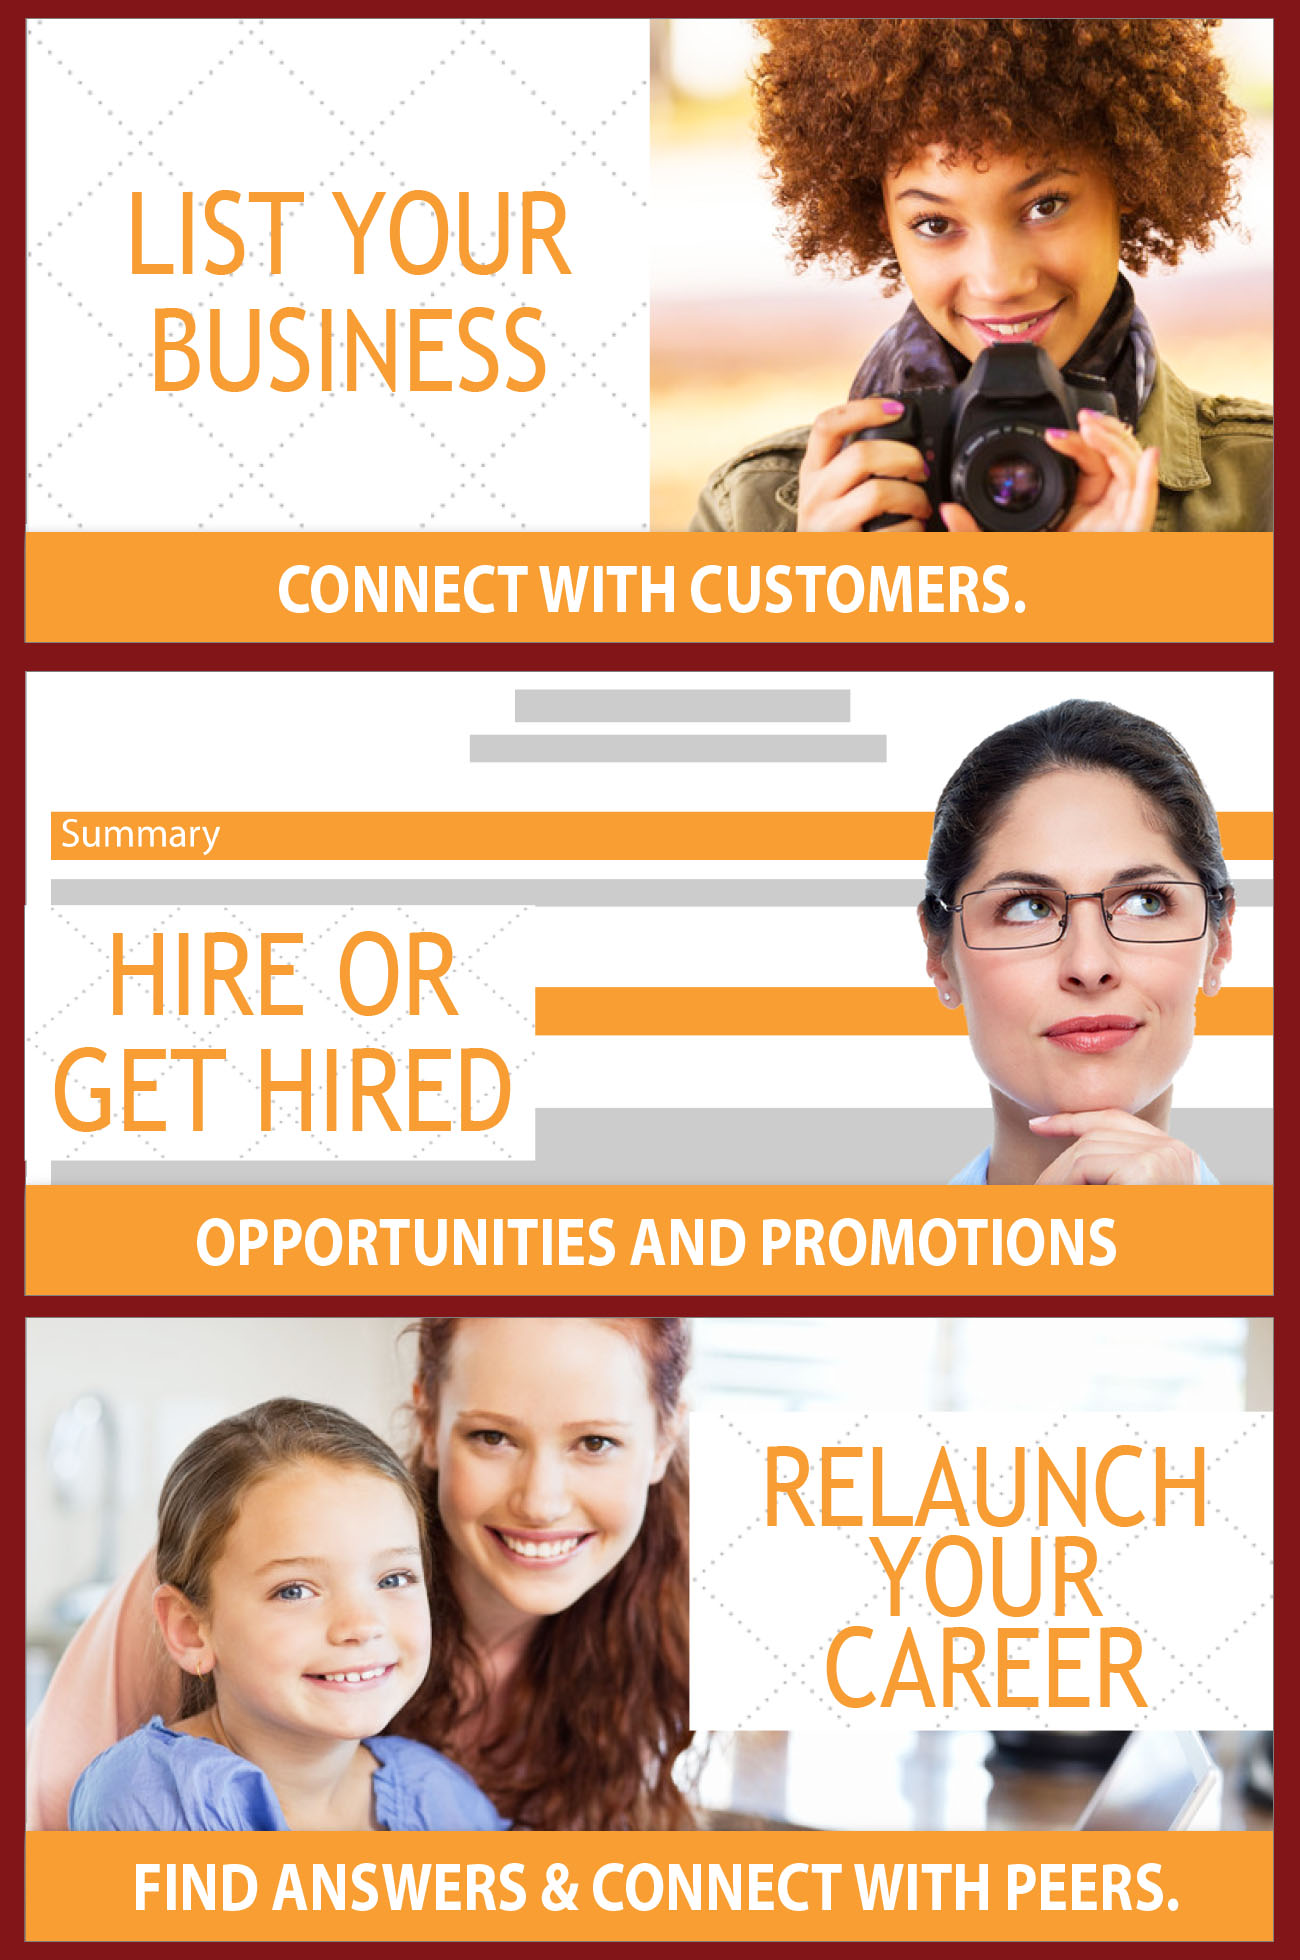 List your business, hire or get hired, relaunch your career